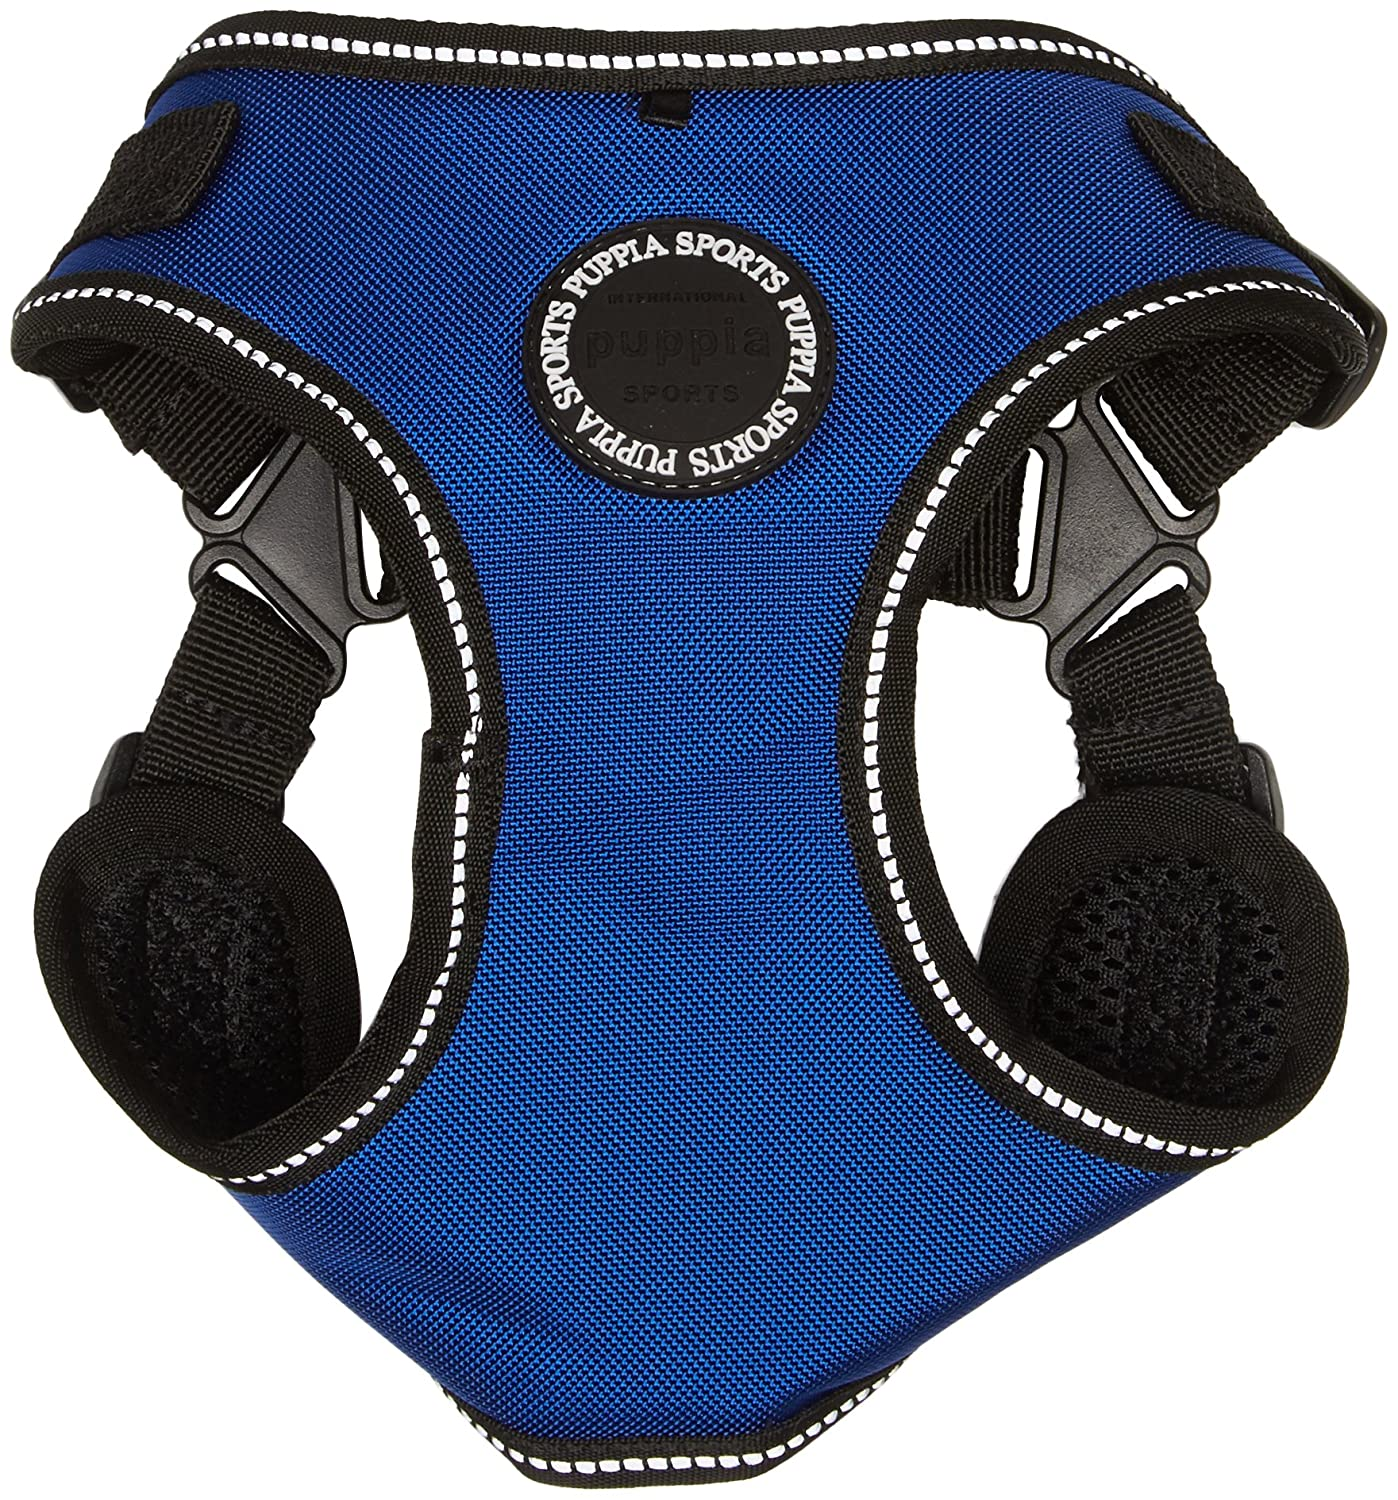 Puppia PLRA-HC9323-RB-L Royal bluee Trek Harness C Pet-Vest-Harnesses, Large